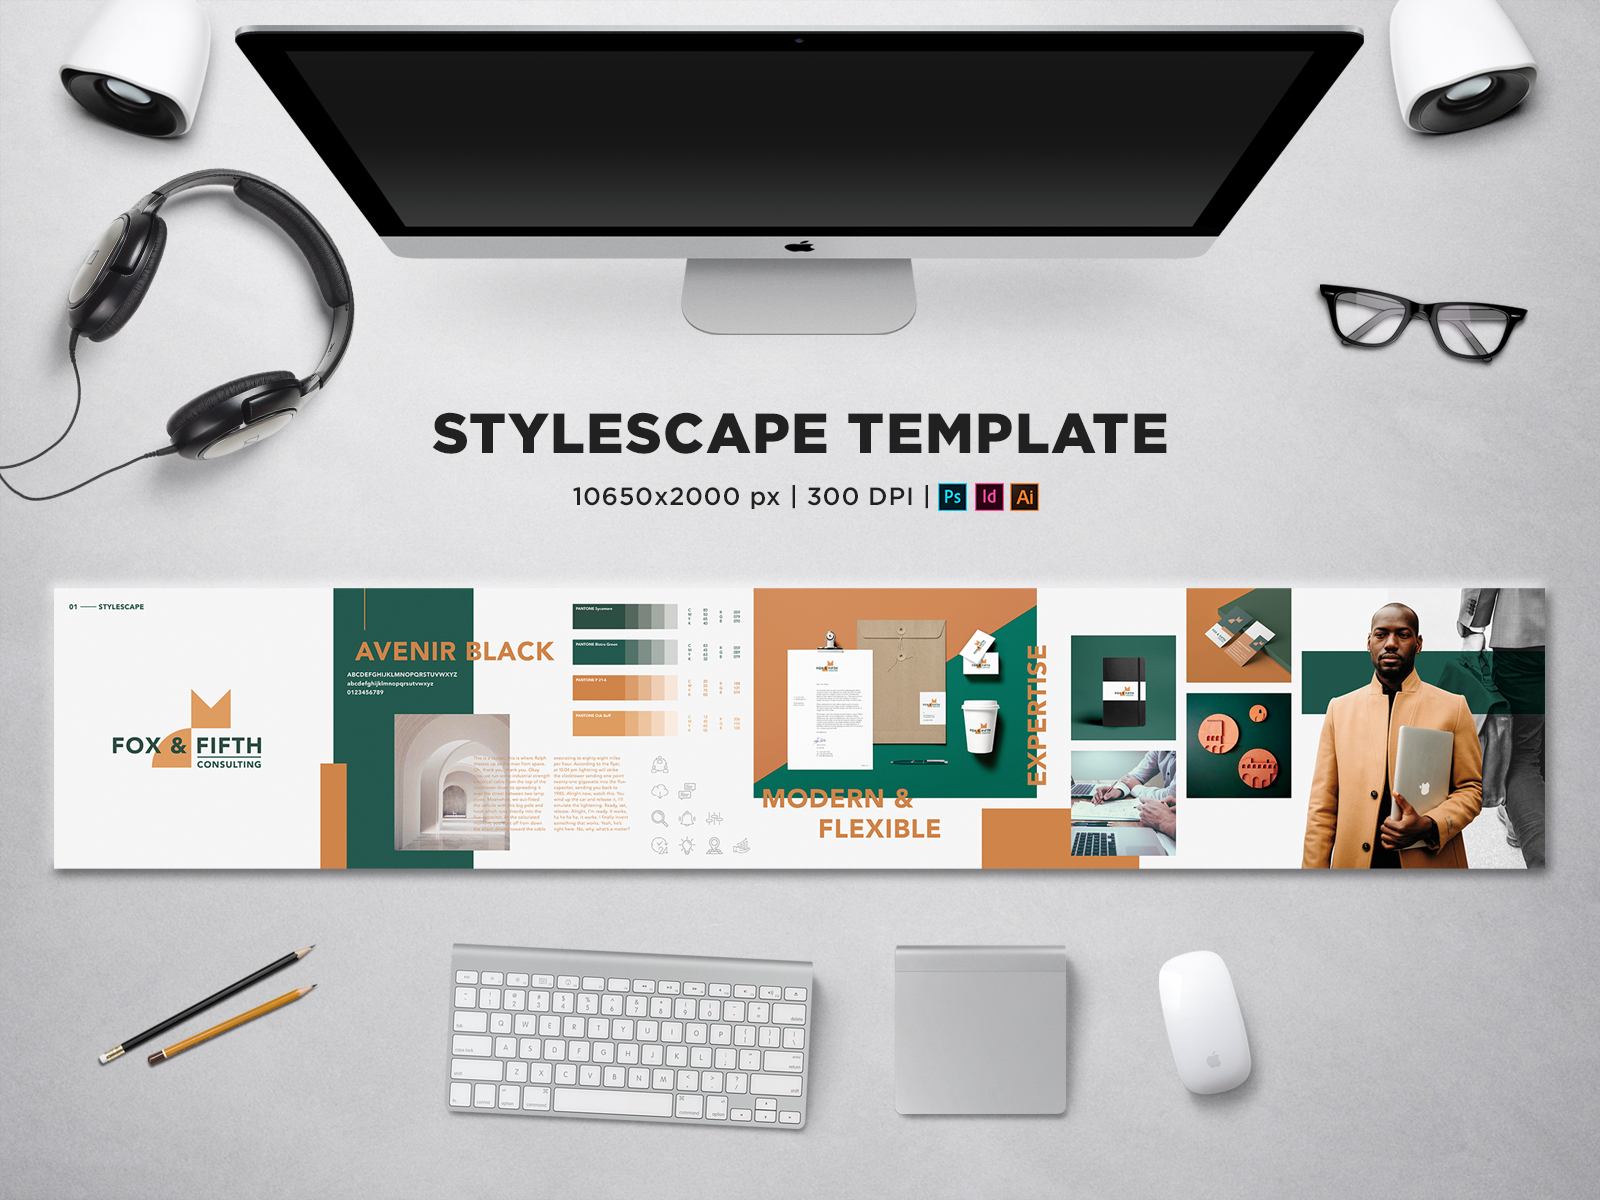 Stylescape Graphic Design: Stylescape Template By Andre28 On Dribbble